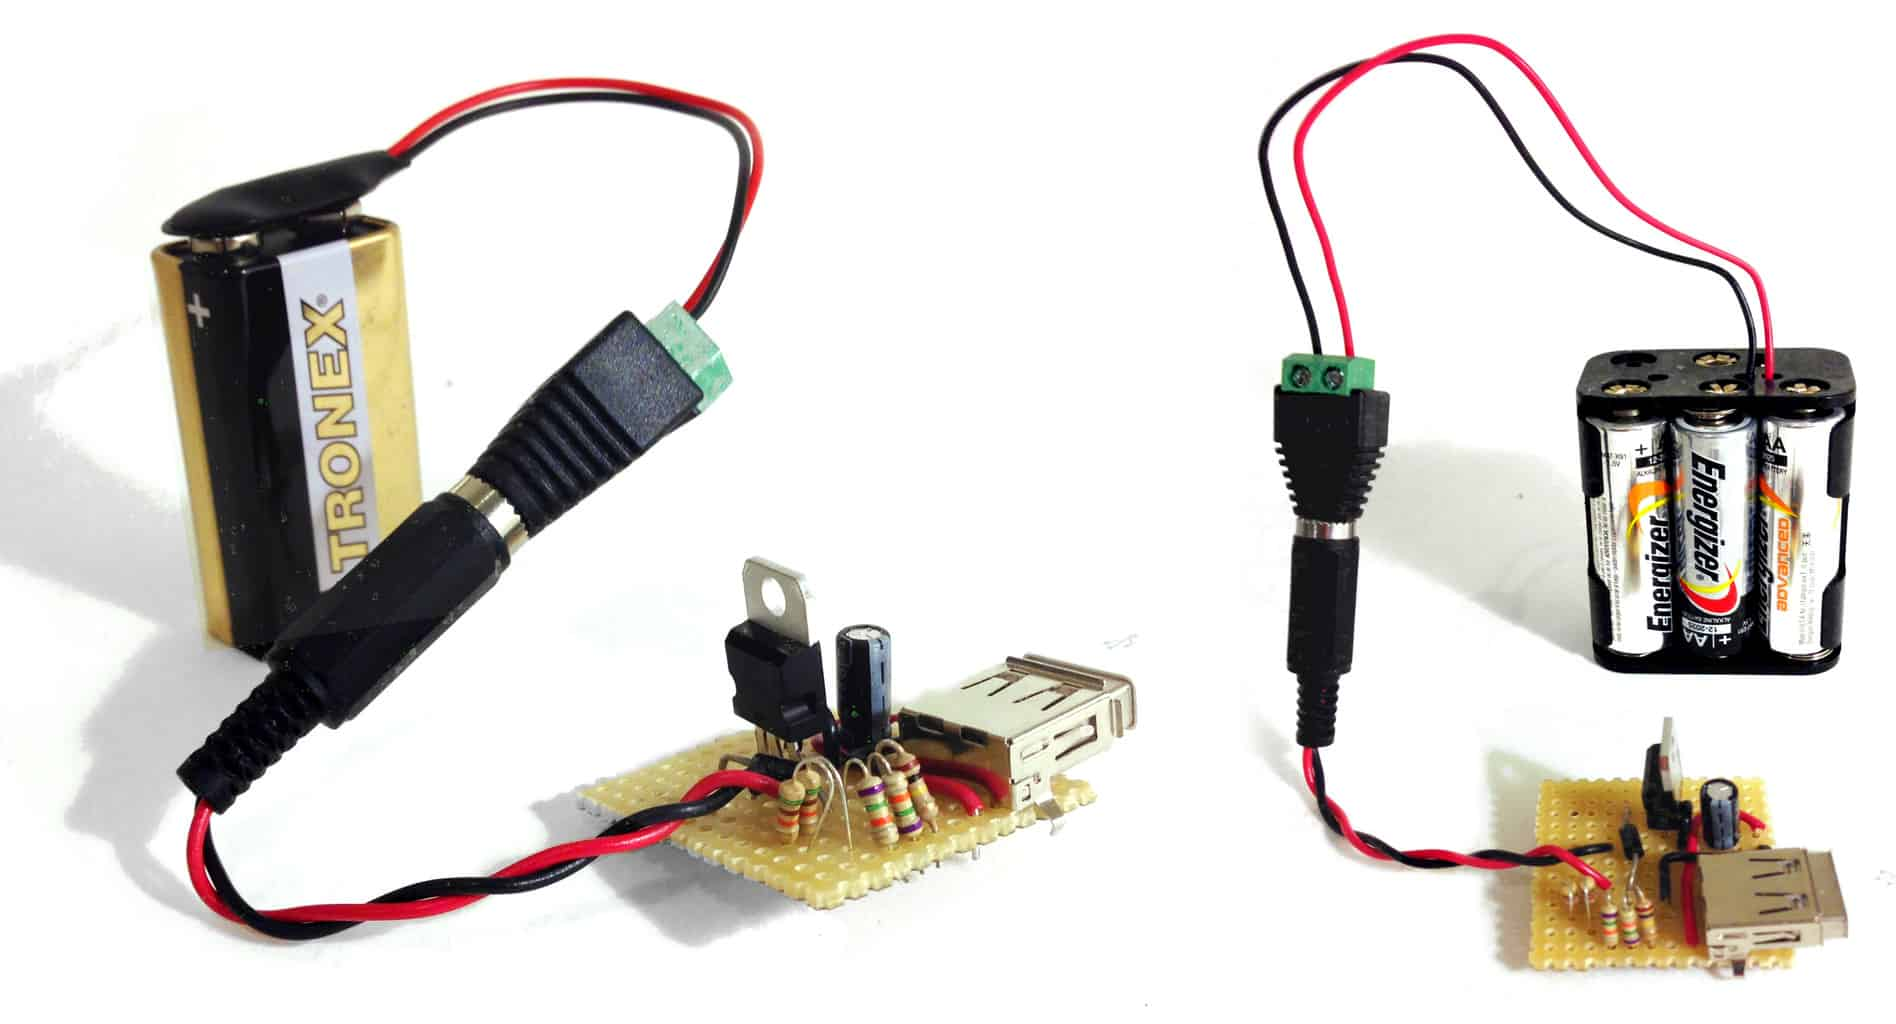 hight resolution of portable usb charger with different power sources